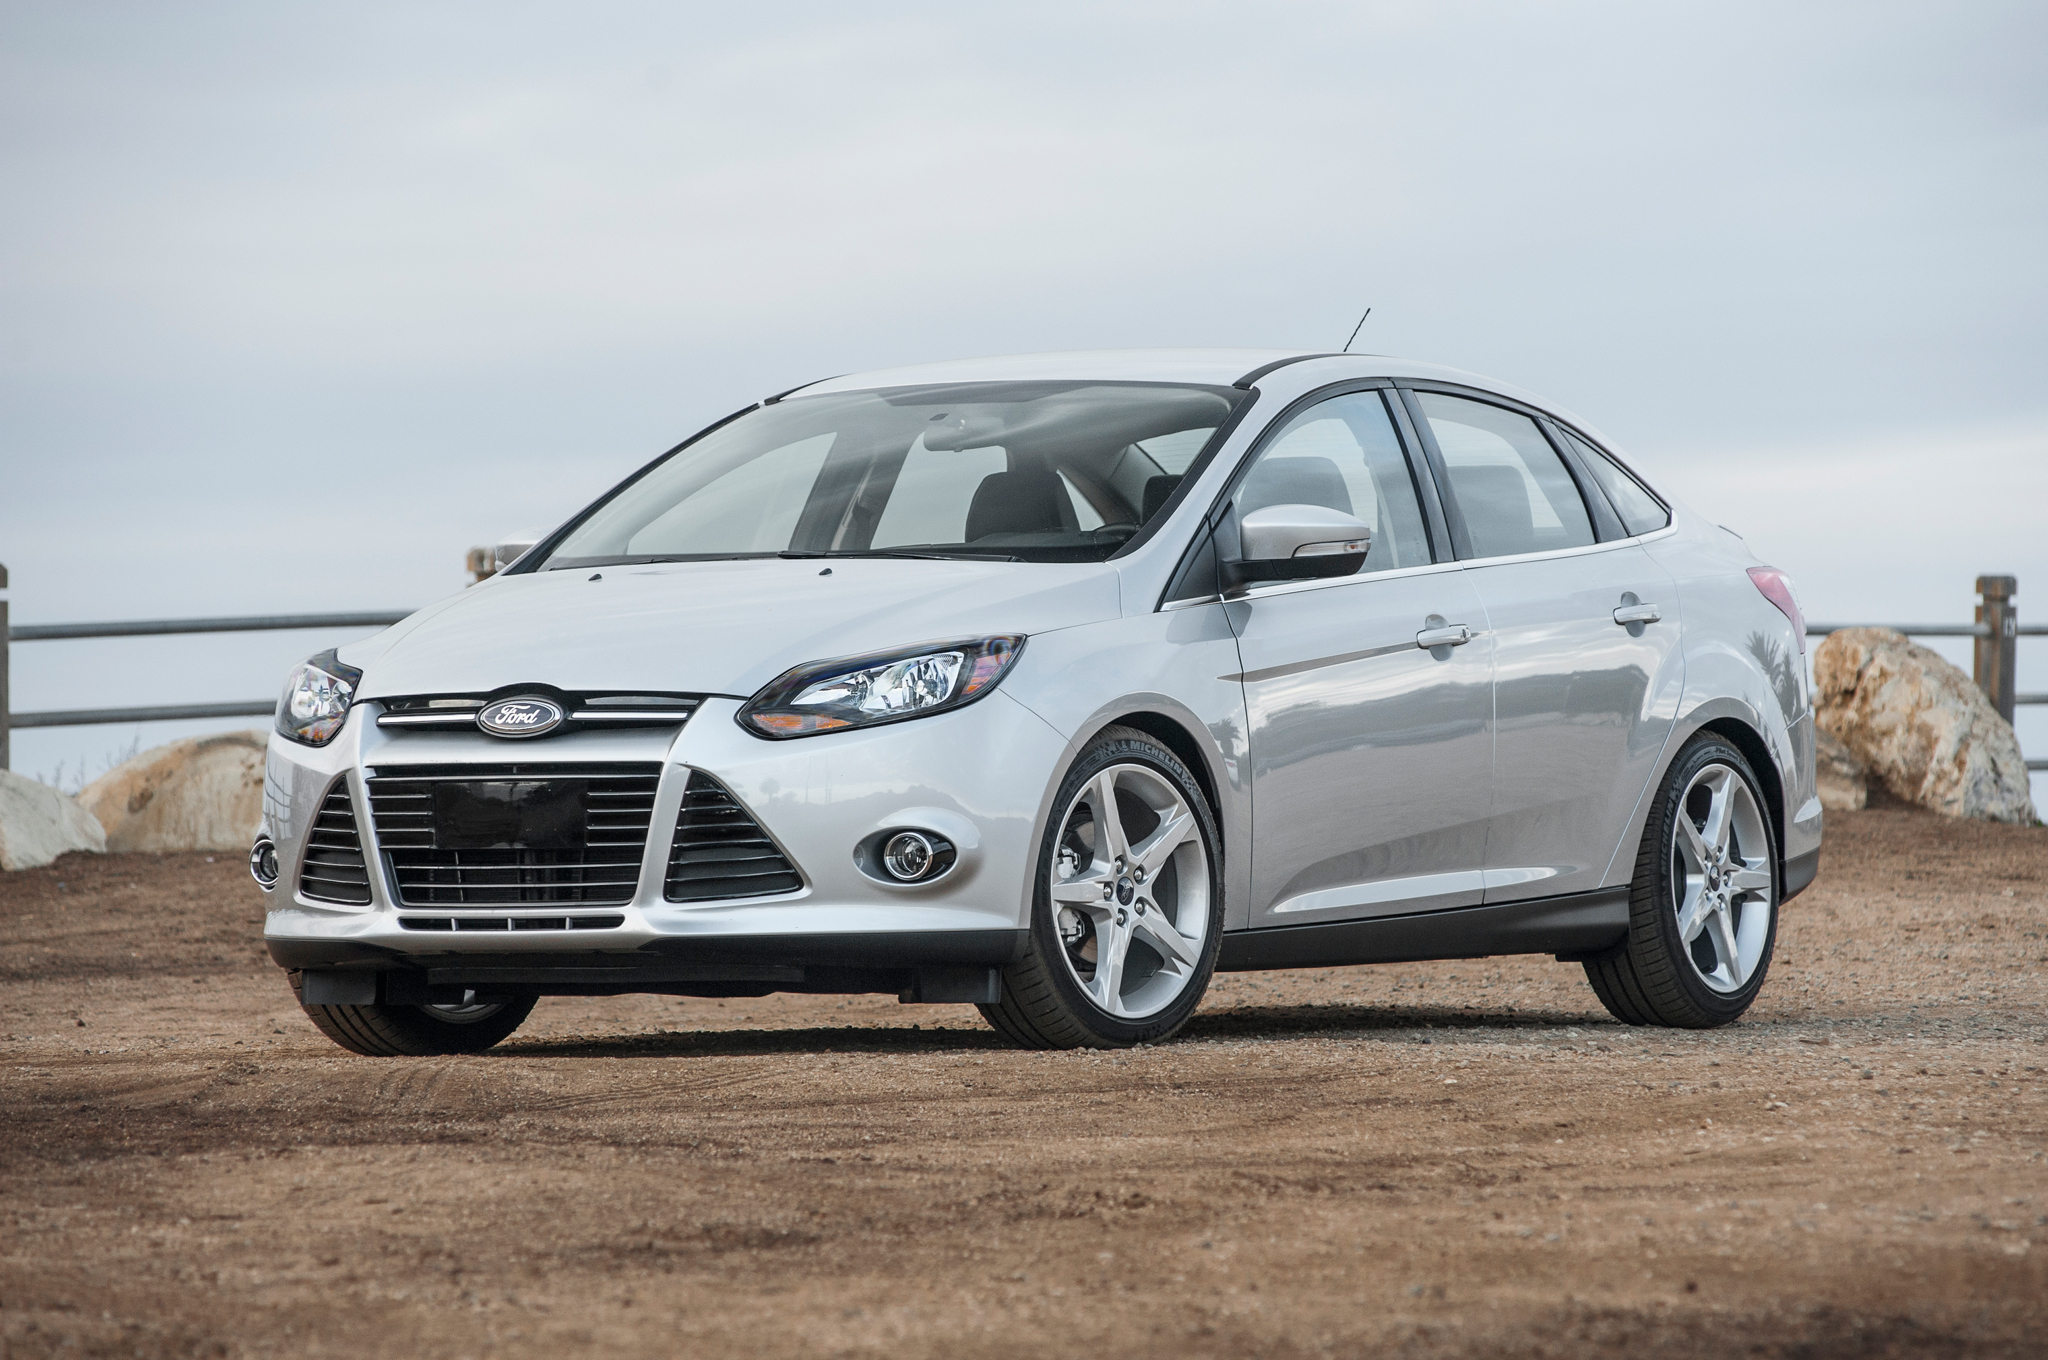 2014 Ford Focus Mpg >> 2014 Ford Focus Titanium First Test Motor Trend Motortrend